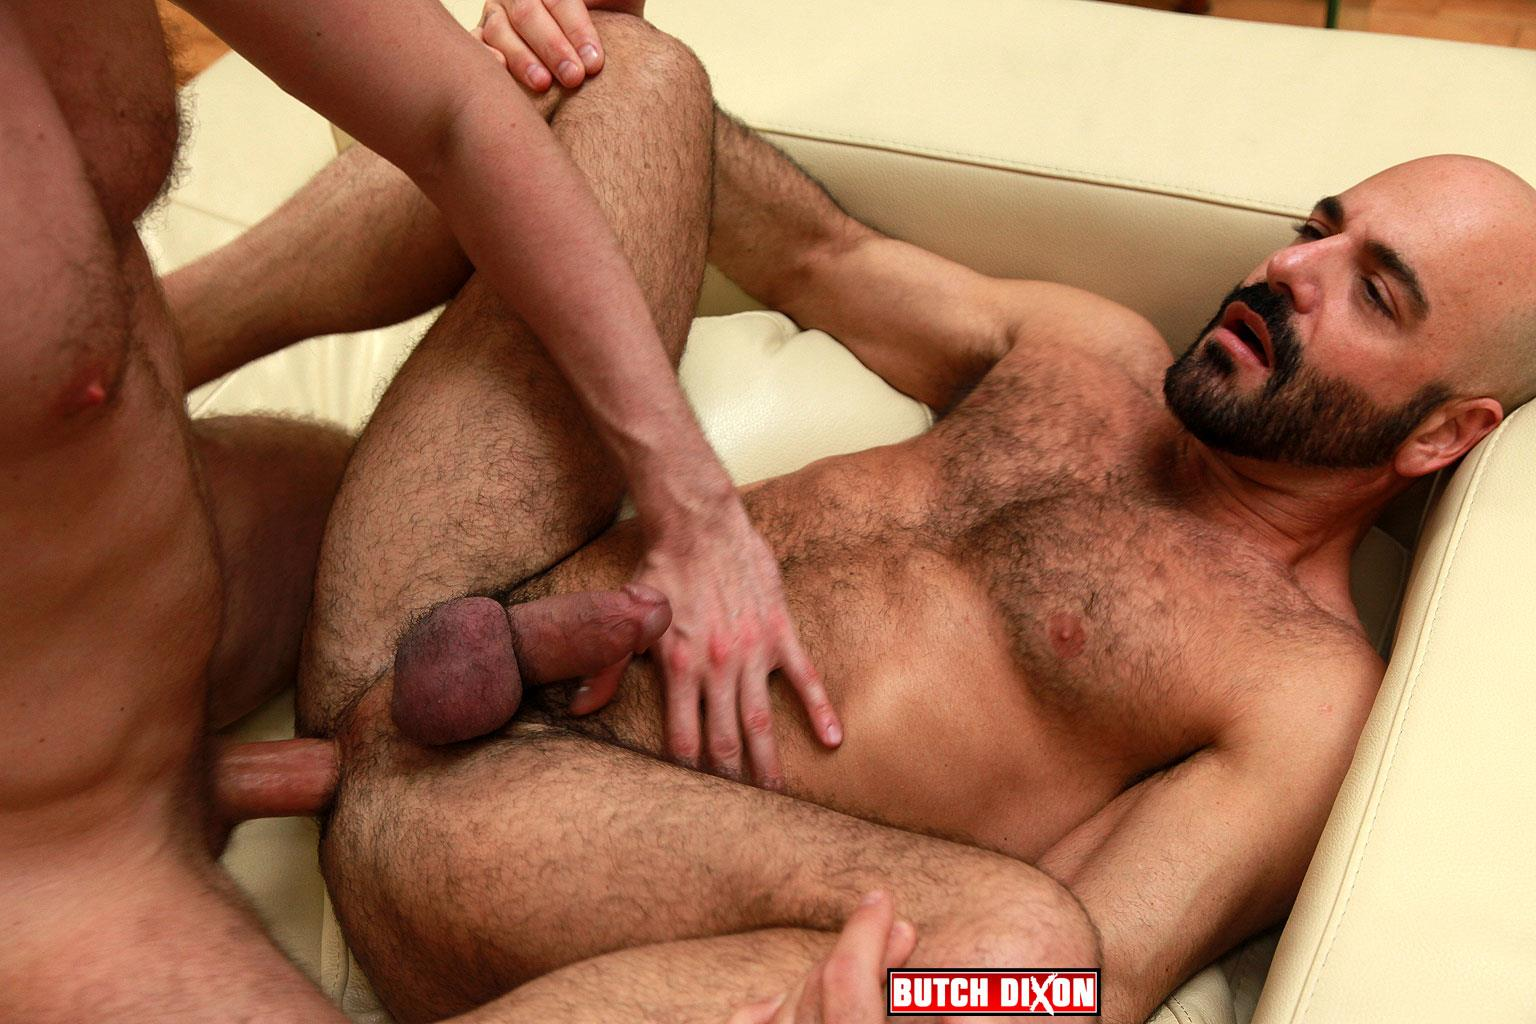 Butch-Dixon-Adam-Russo-and-Adam-Dacre-Getting-Fucked-By-A-Big-Uncut-Cock-Amateur-Gay-Porn-06 Adam Russo Getting A Big Bareback Uncut Cock Up His Hairy Ass